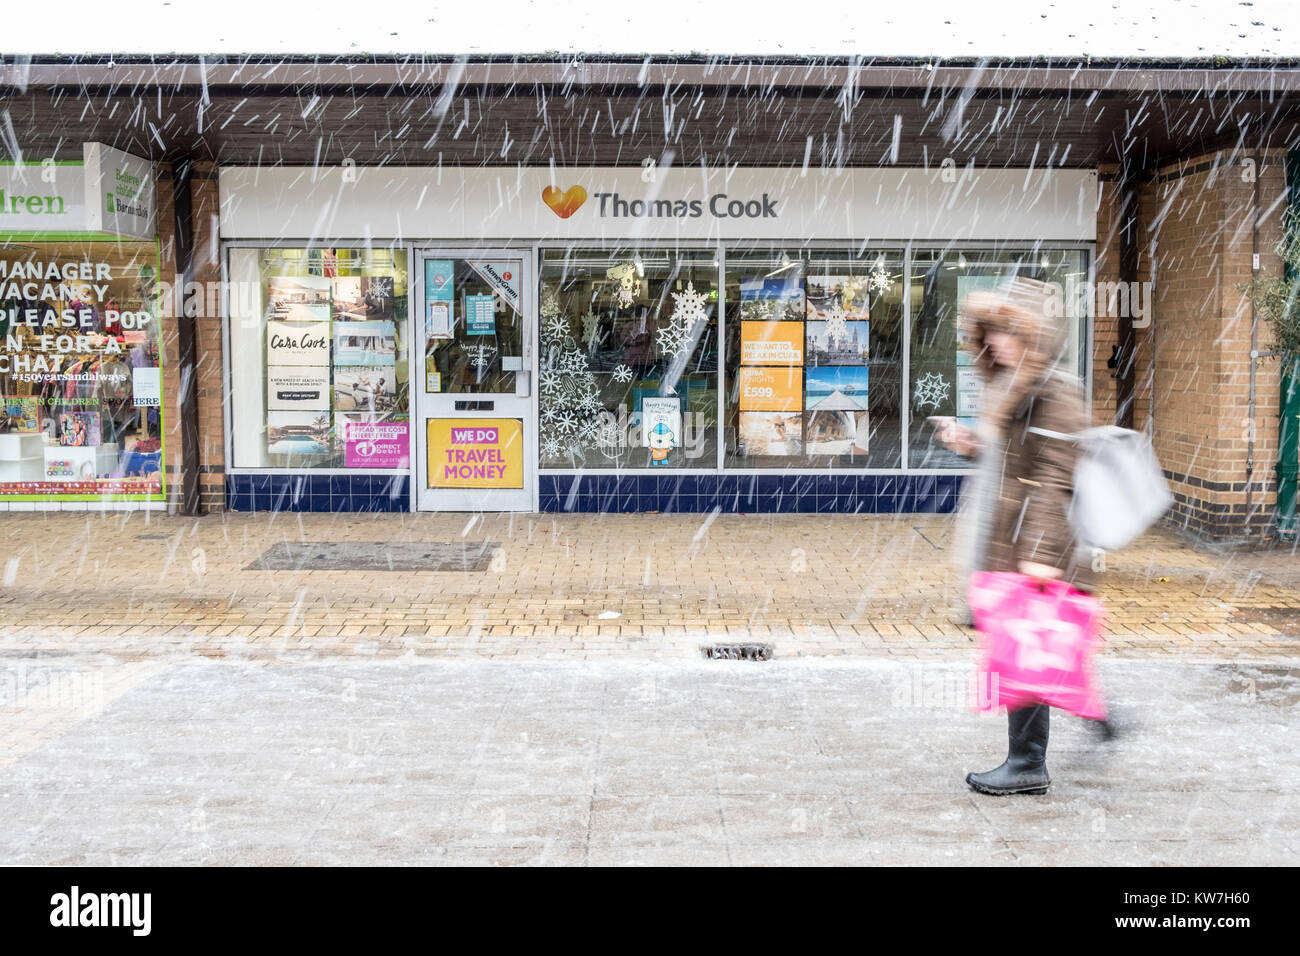 Woman walks past exterior of branch of  Thomas Cook Travel Agency in winter snow - Stock Image